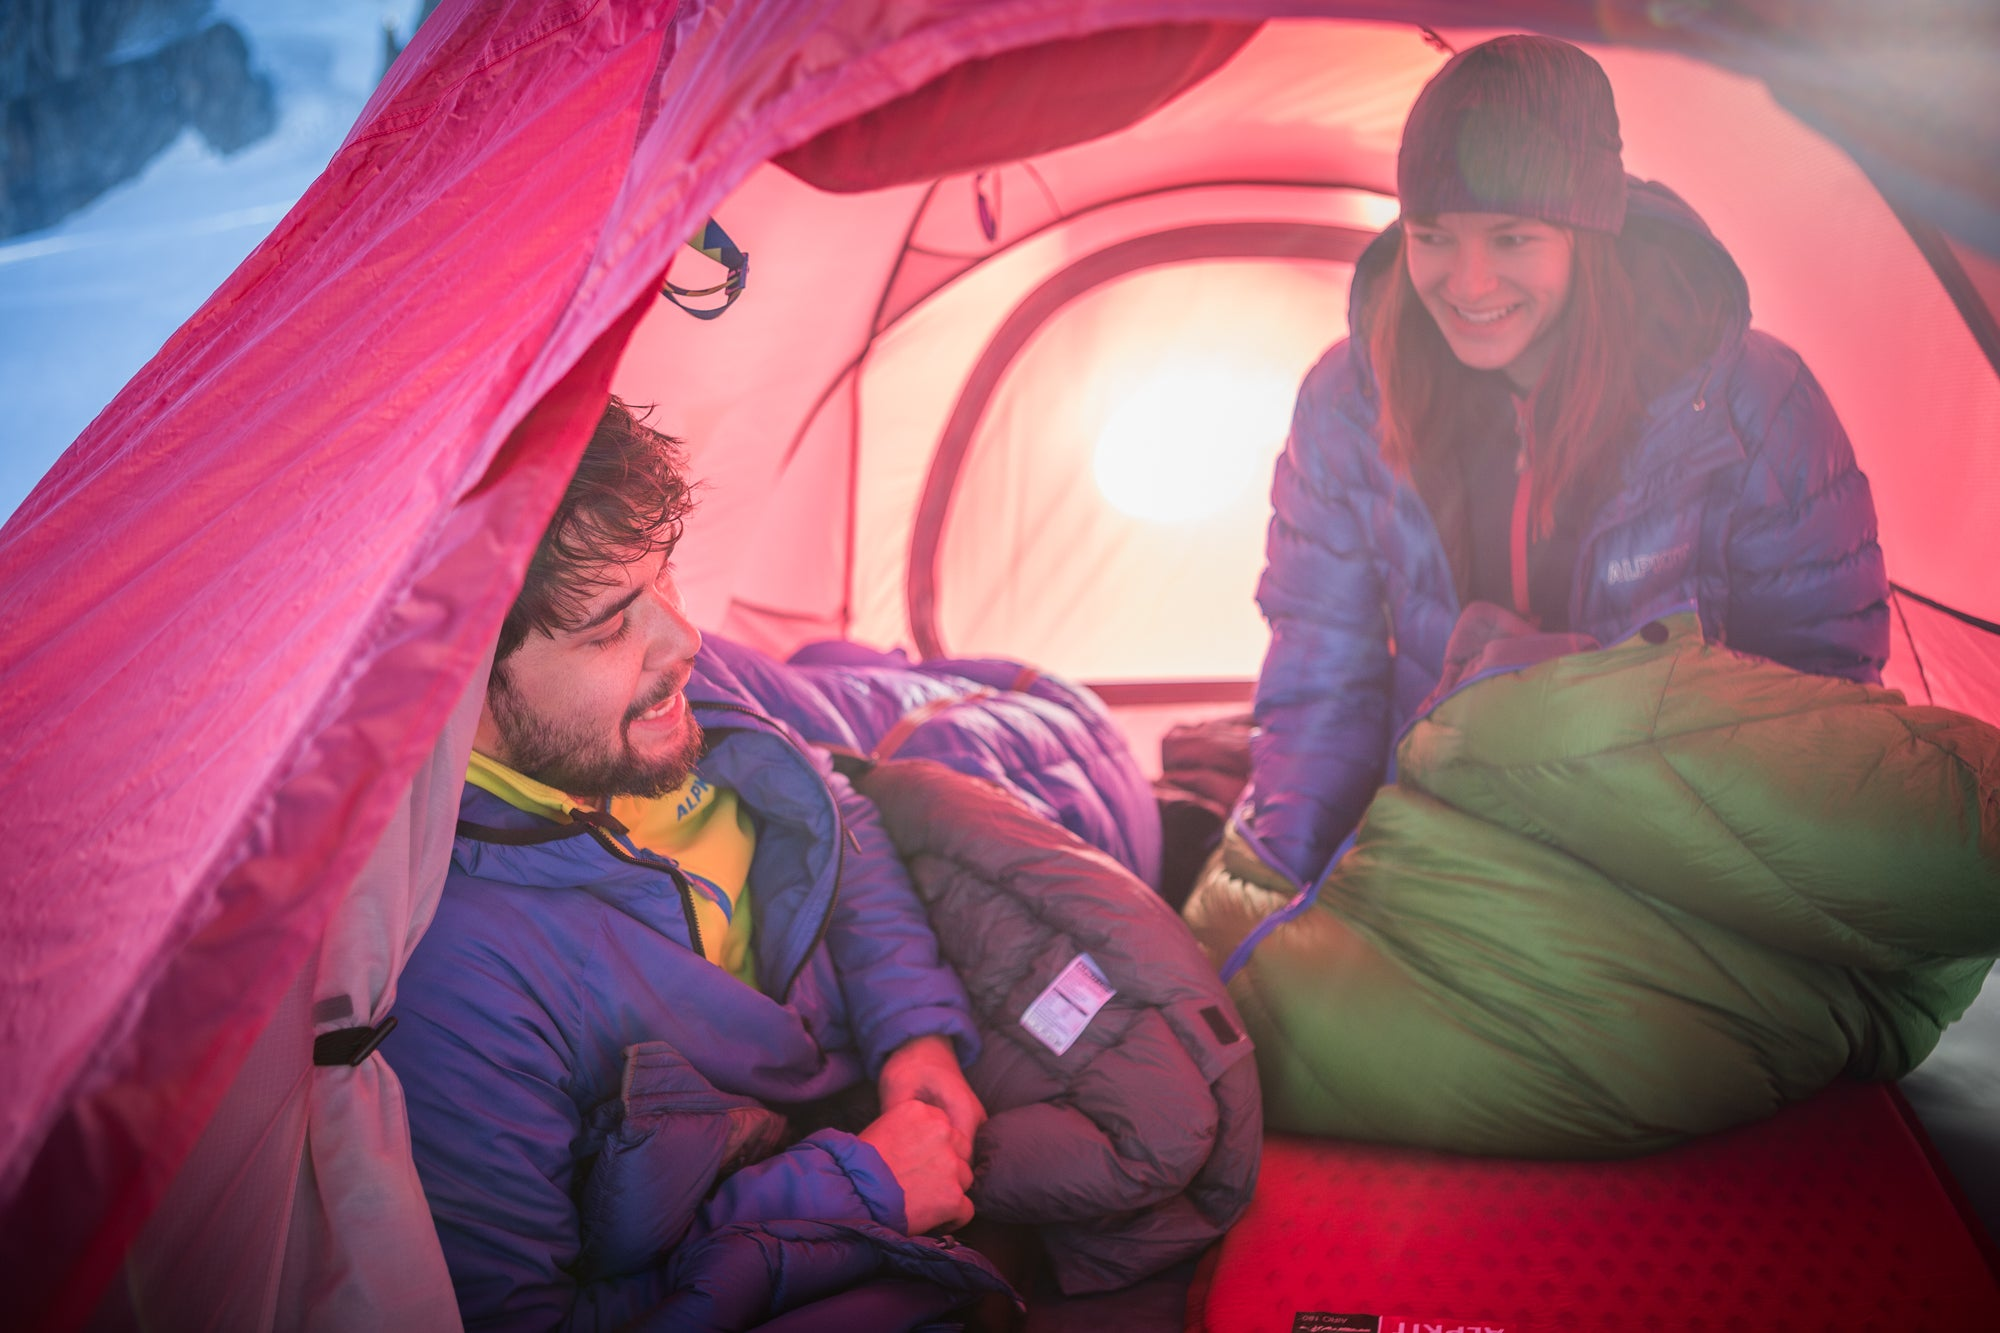 Lying inside the tent in the French Alps on Alpkit sleeping mats